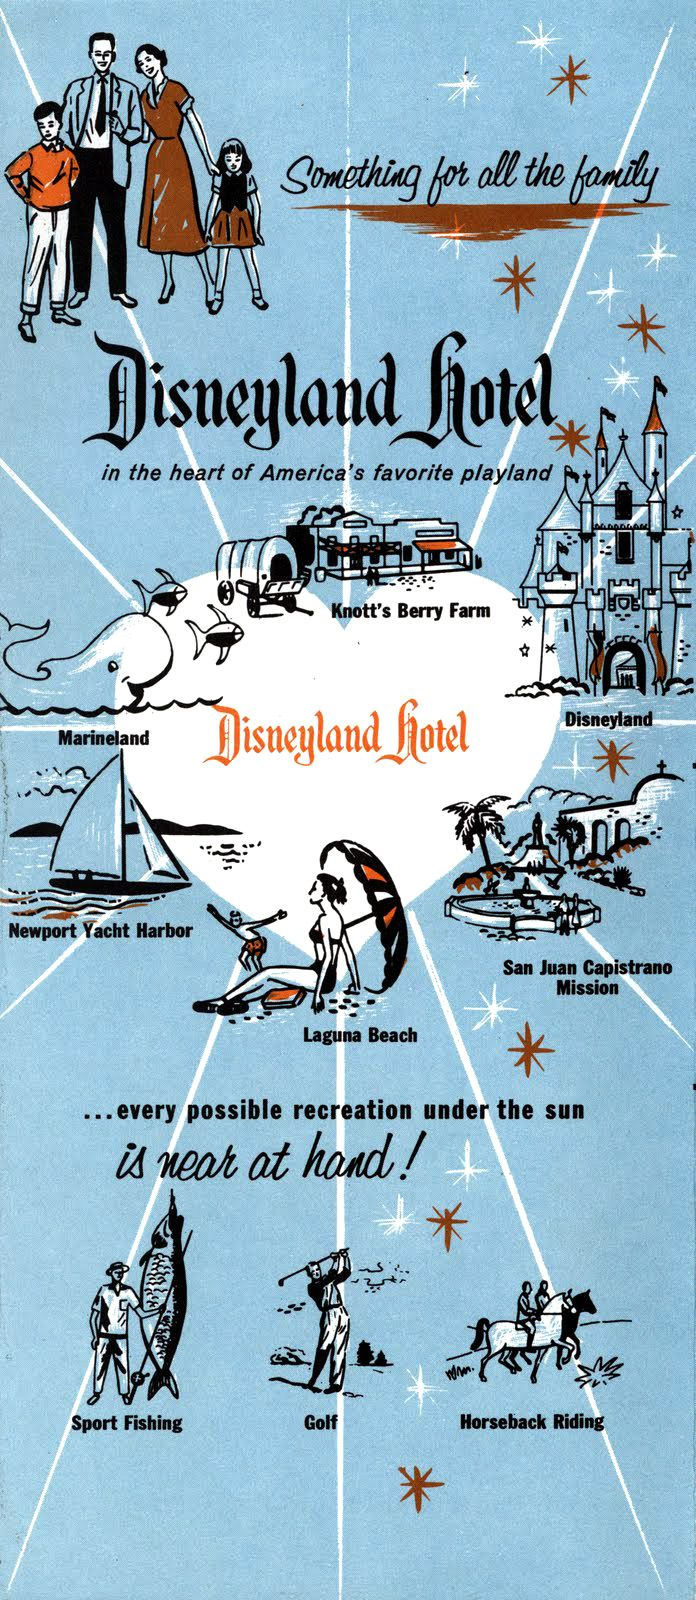 1957 Disneyland Hotel brochure via Vintage Disneyland Tickets | I think I'm going to work there!